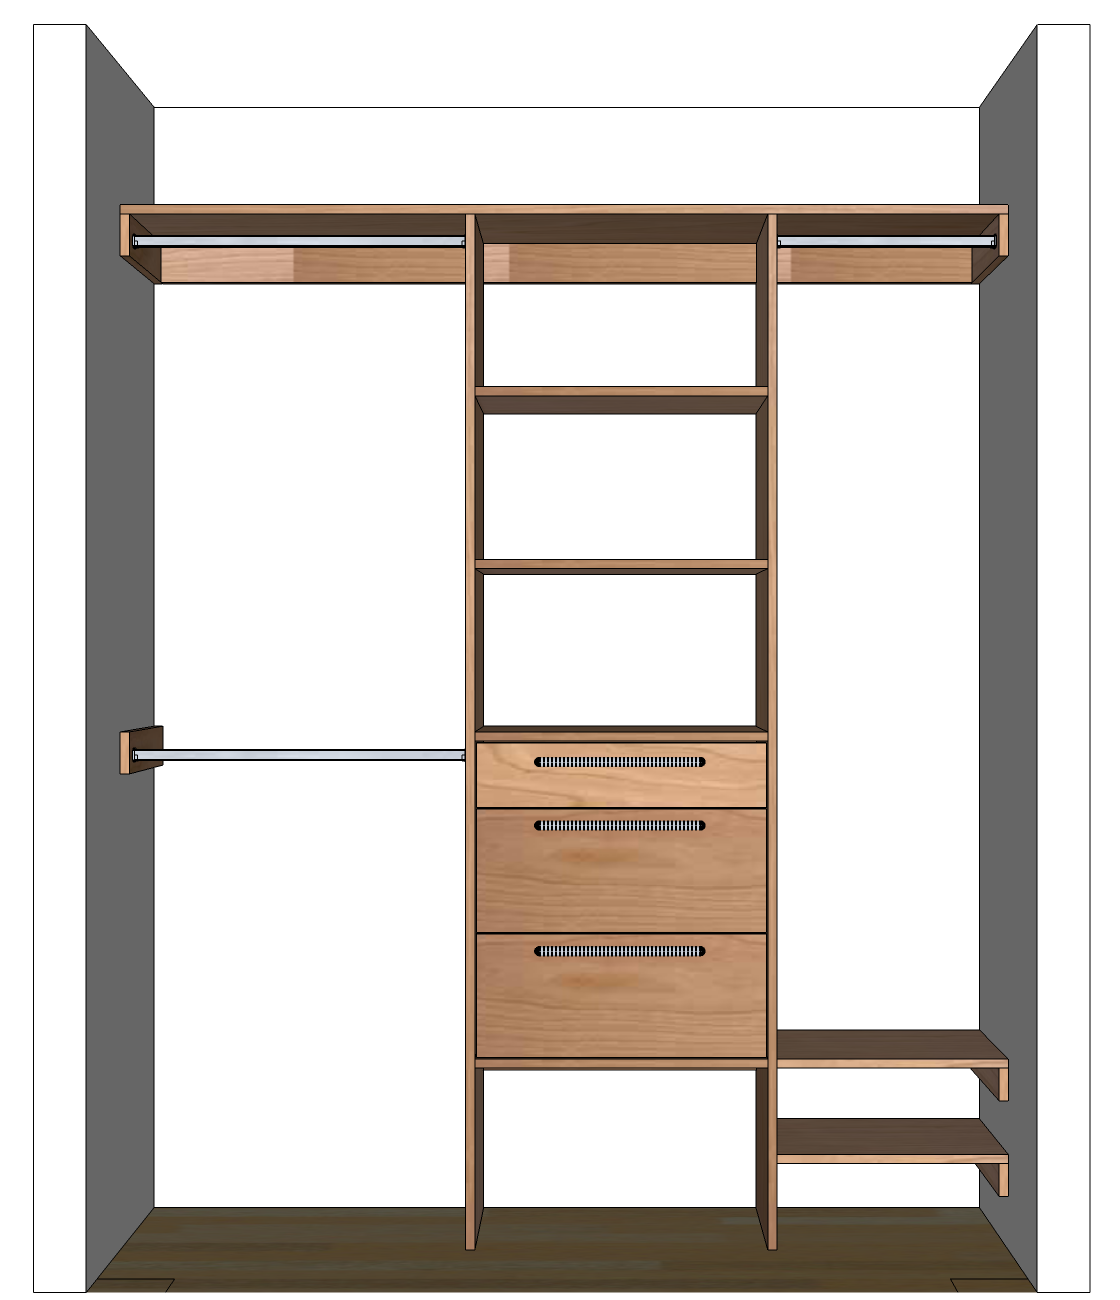 design diy system size building a of with how dressing room also closet ideas cedar in as walk well full plus video by for step to build